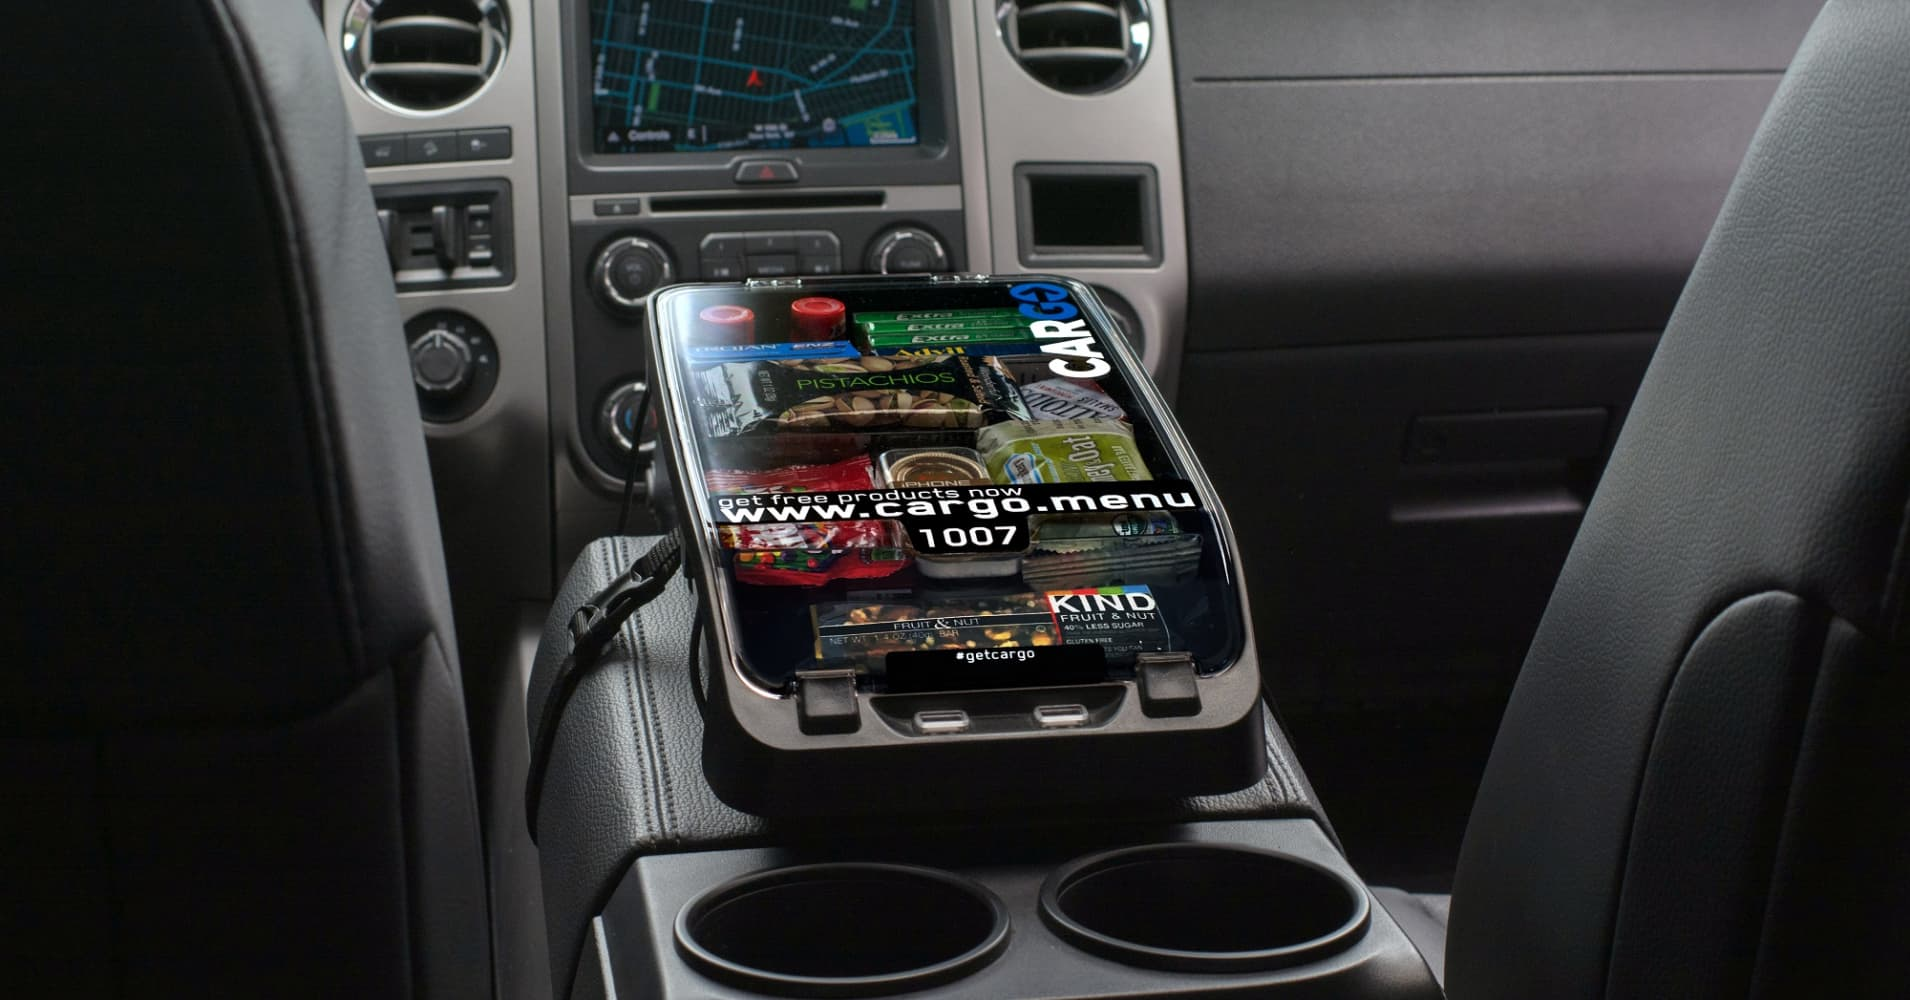 Image result for snacks box in uber cars